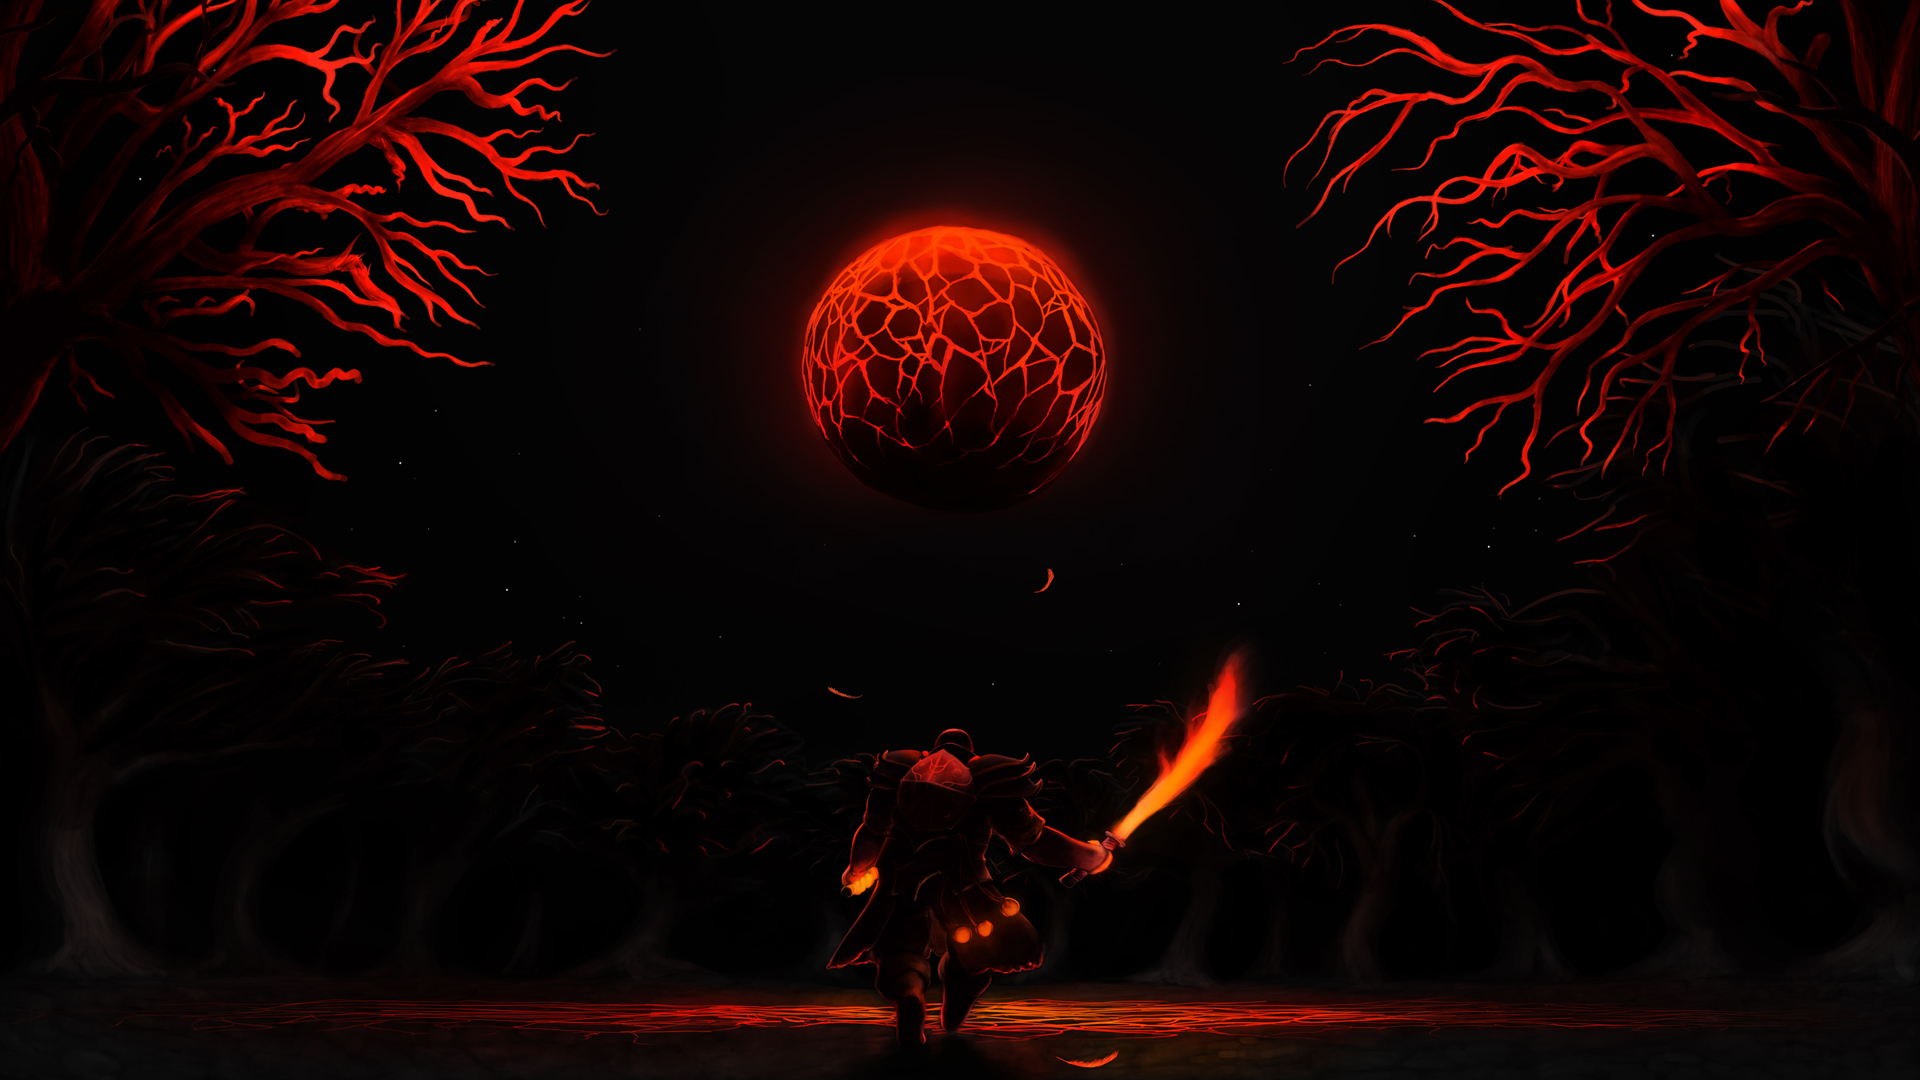 Iphone wallpaper dota - Ember Spirit Vs Phoenix Desktop Wallpapers Wallpapers